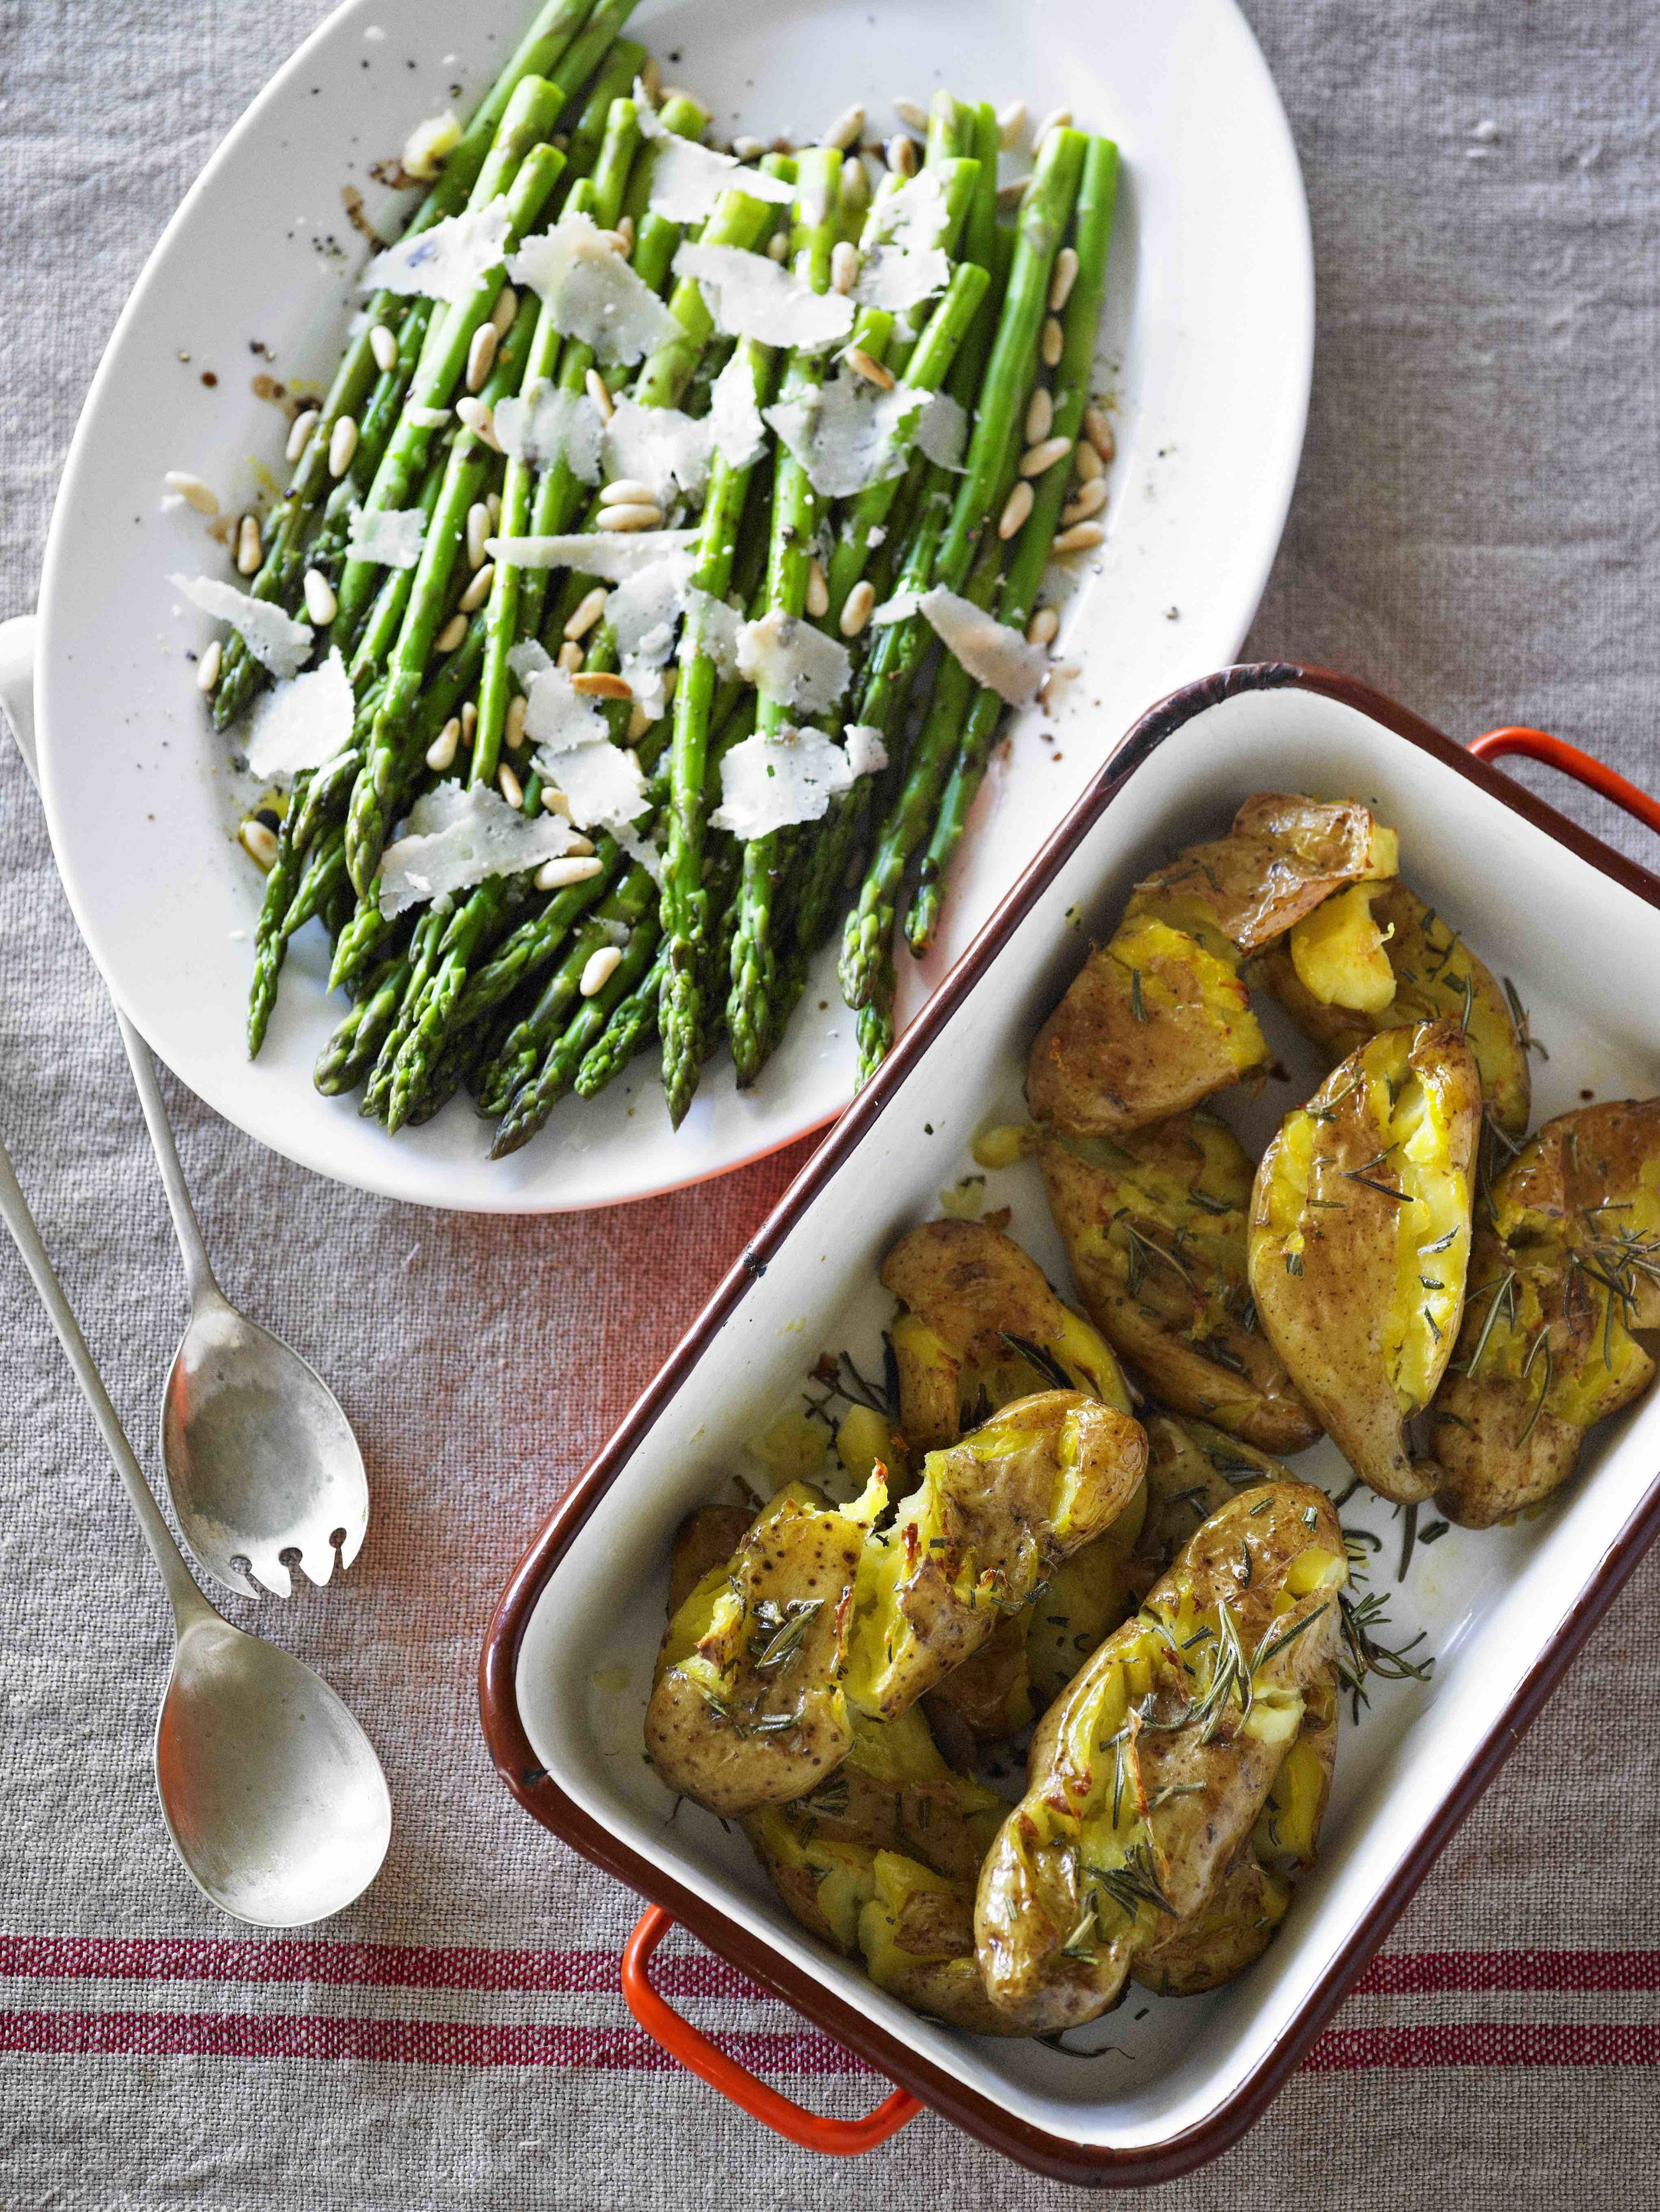 SIDES ASPARAGUS AND SMASHED POTATOES Jpeg low res.jpg